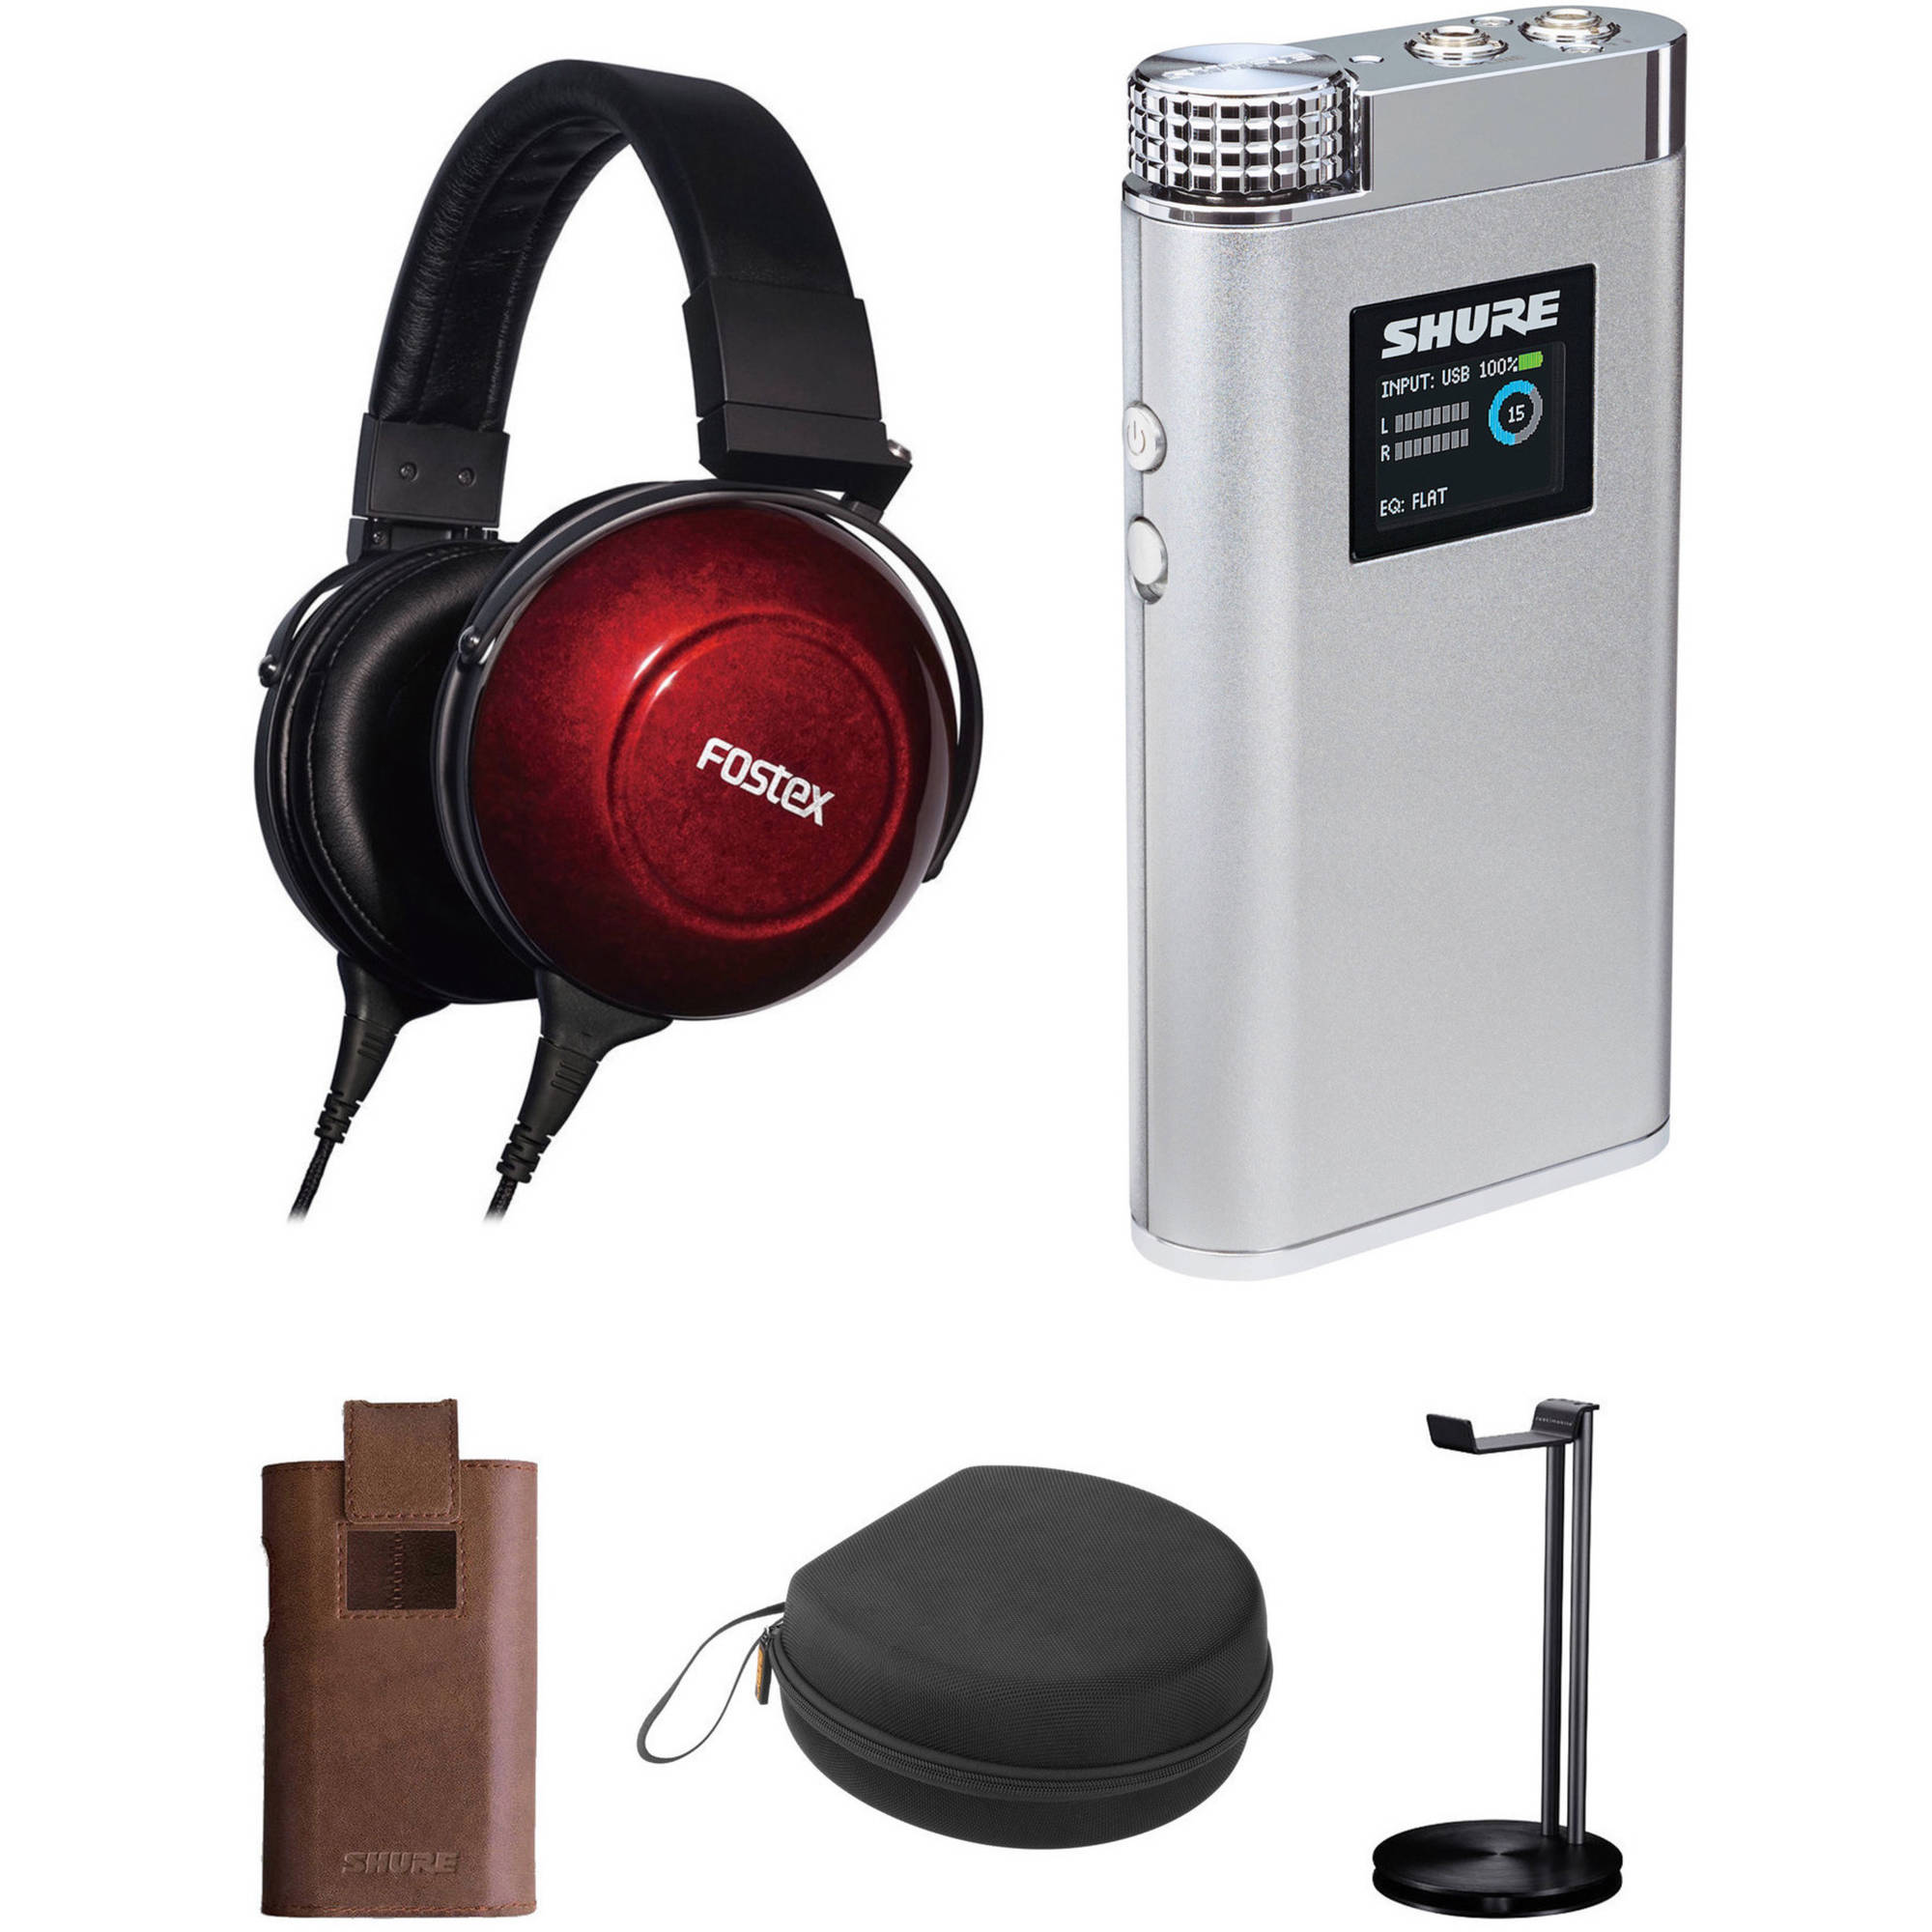 Fostex TH900mk2 Premium Reference Headphones and Shure SHA900 Portable  Amplifier Kit